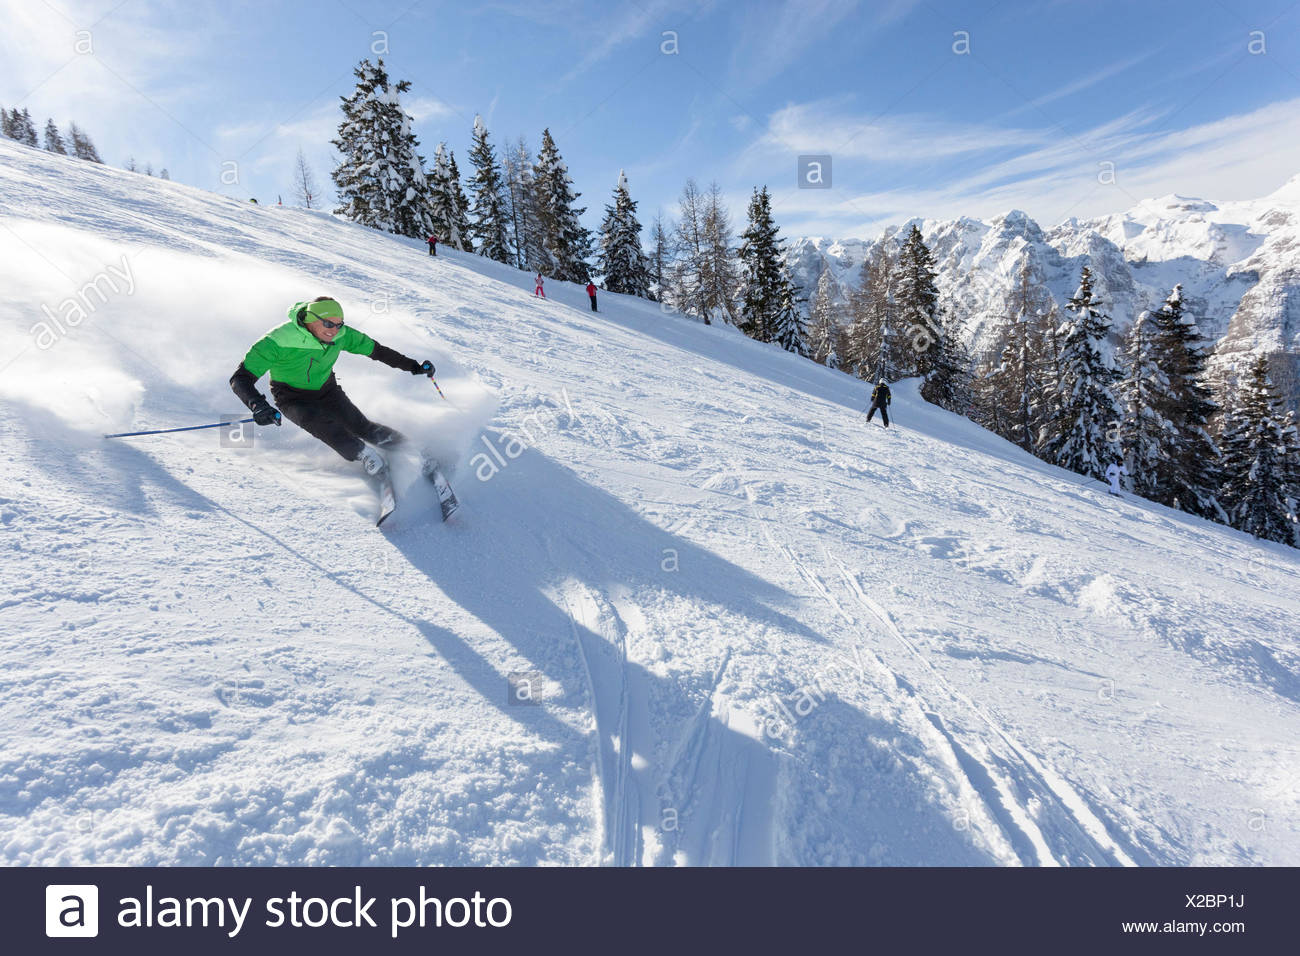 a skier is skiing along the slopes in the Folgarida ski resort with Brenta Group in the background - Stock Image